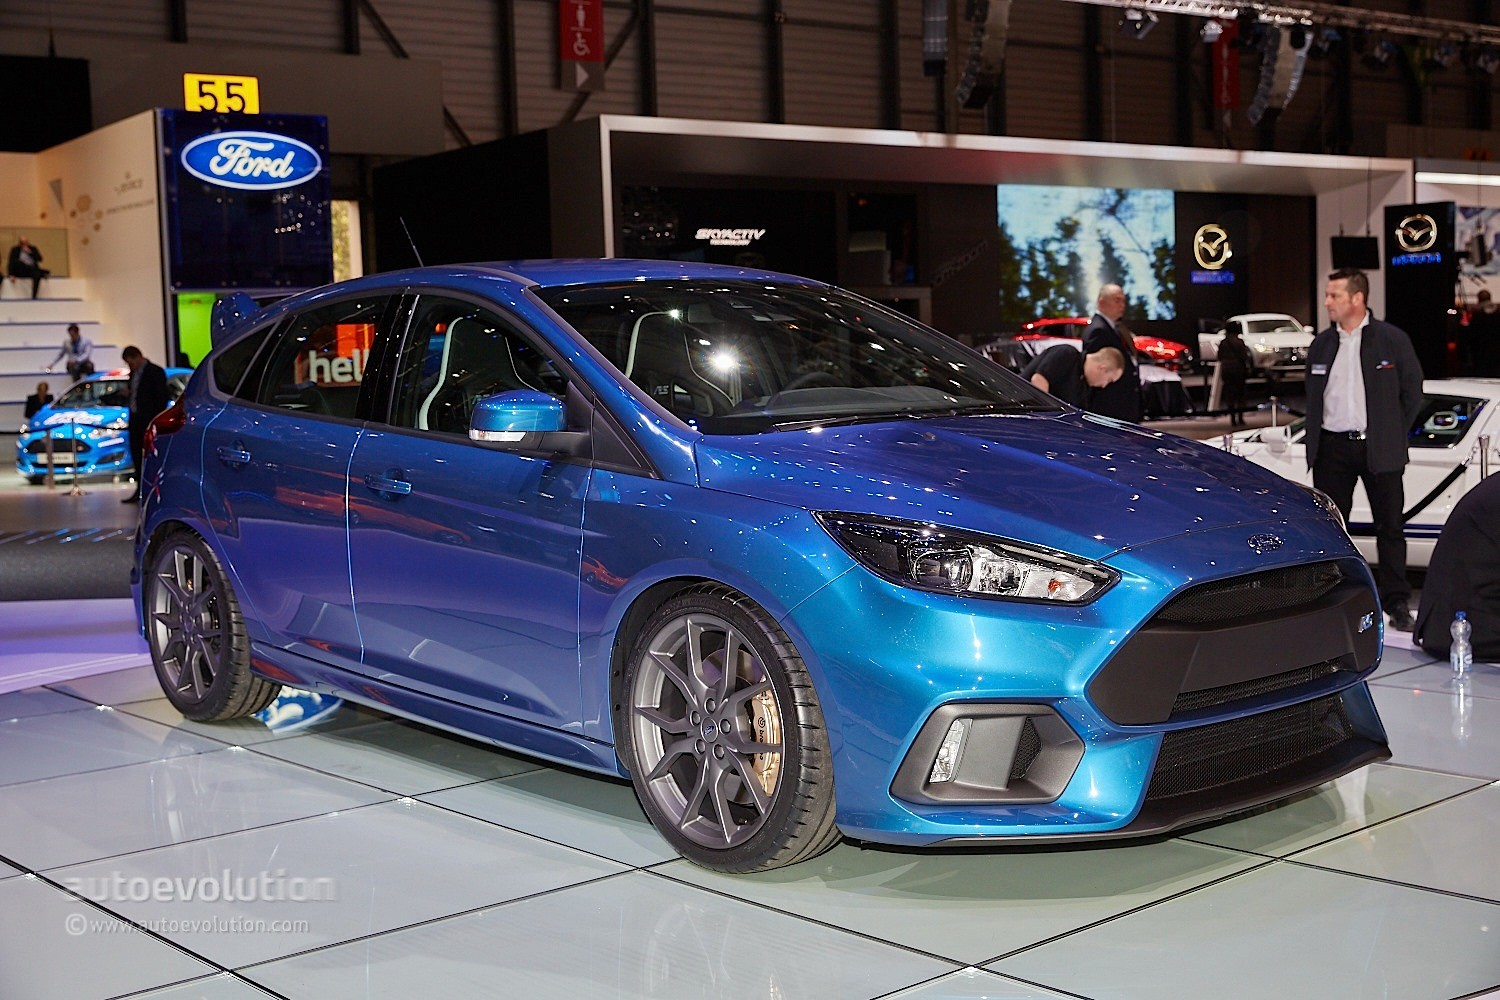 2016 ford focus rs is a liquid blue hooligan 39 s hot hatch in geneva autoevolution. Black Bedroom Furniture Sets. Home Design Ideas